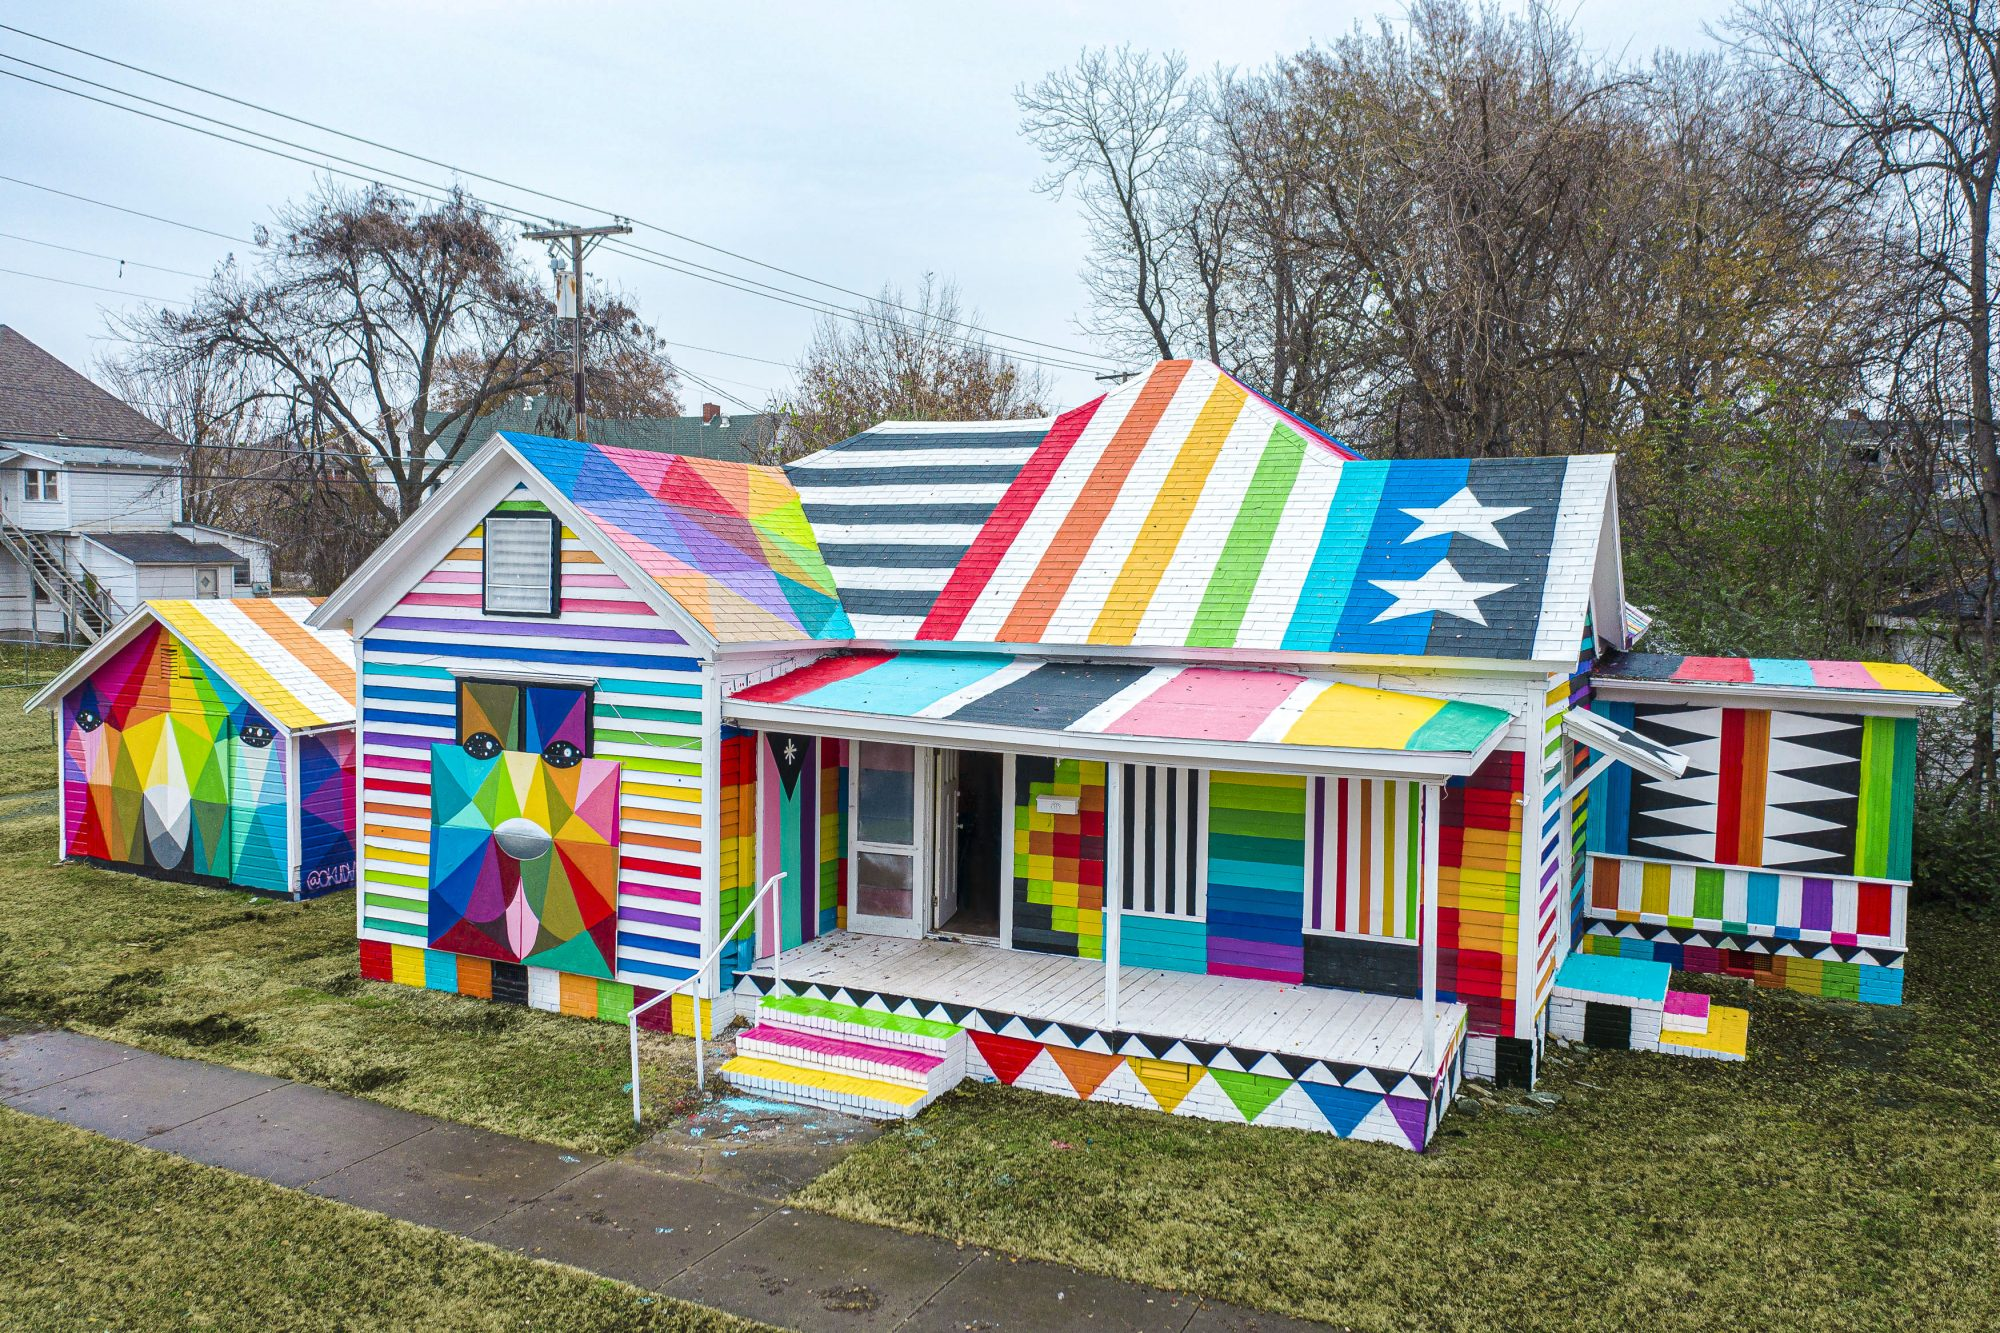 Plan a Trip To See The Rainbow Embassy Public Art Project in Fort Smith, Arkansas